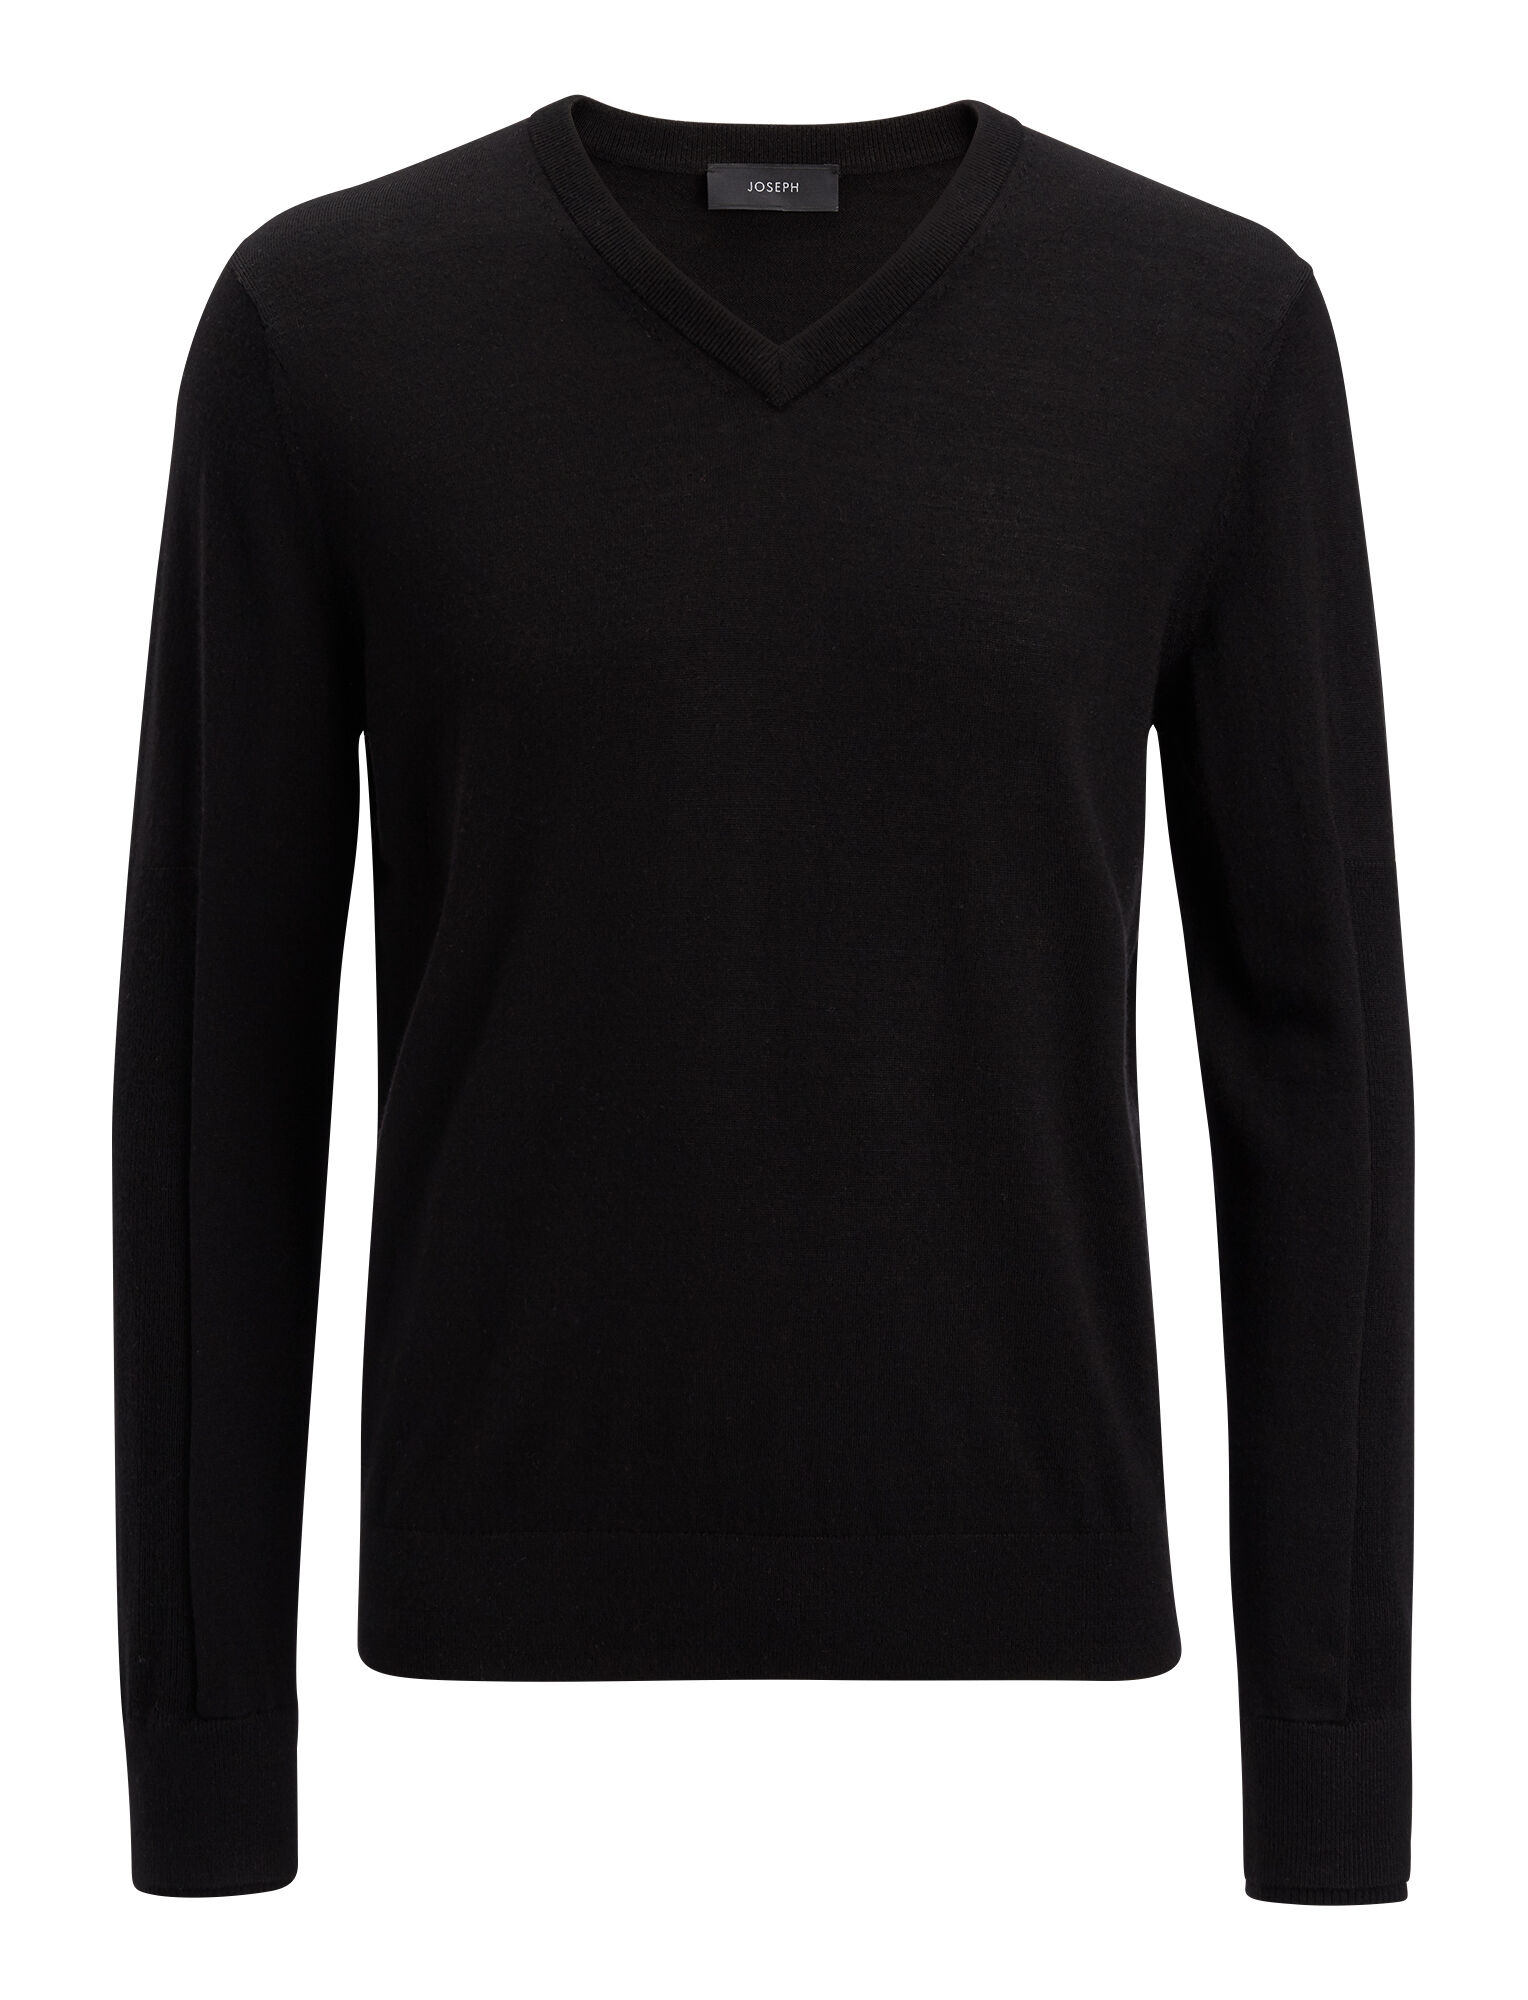 Joseph, Merinos V Neck + Rib Patch Knit, in BLACK